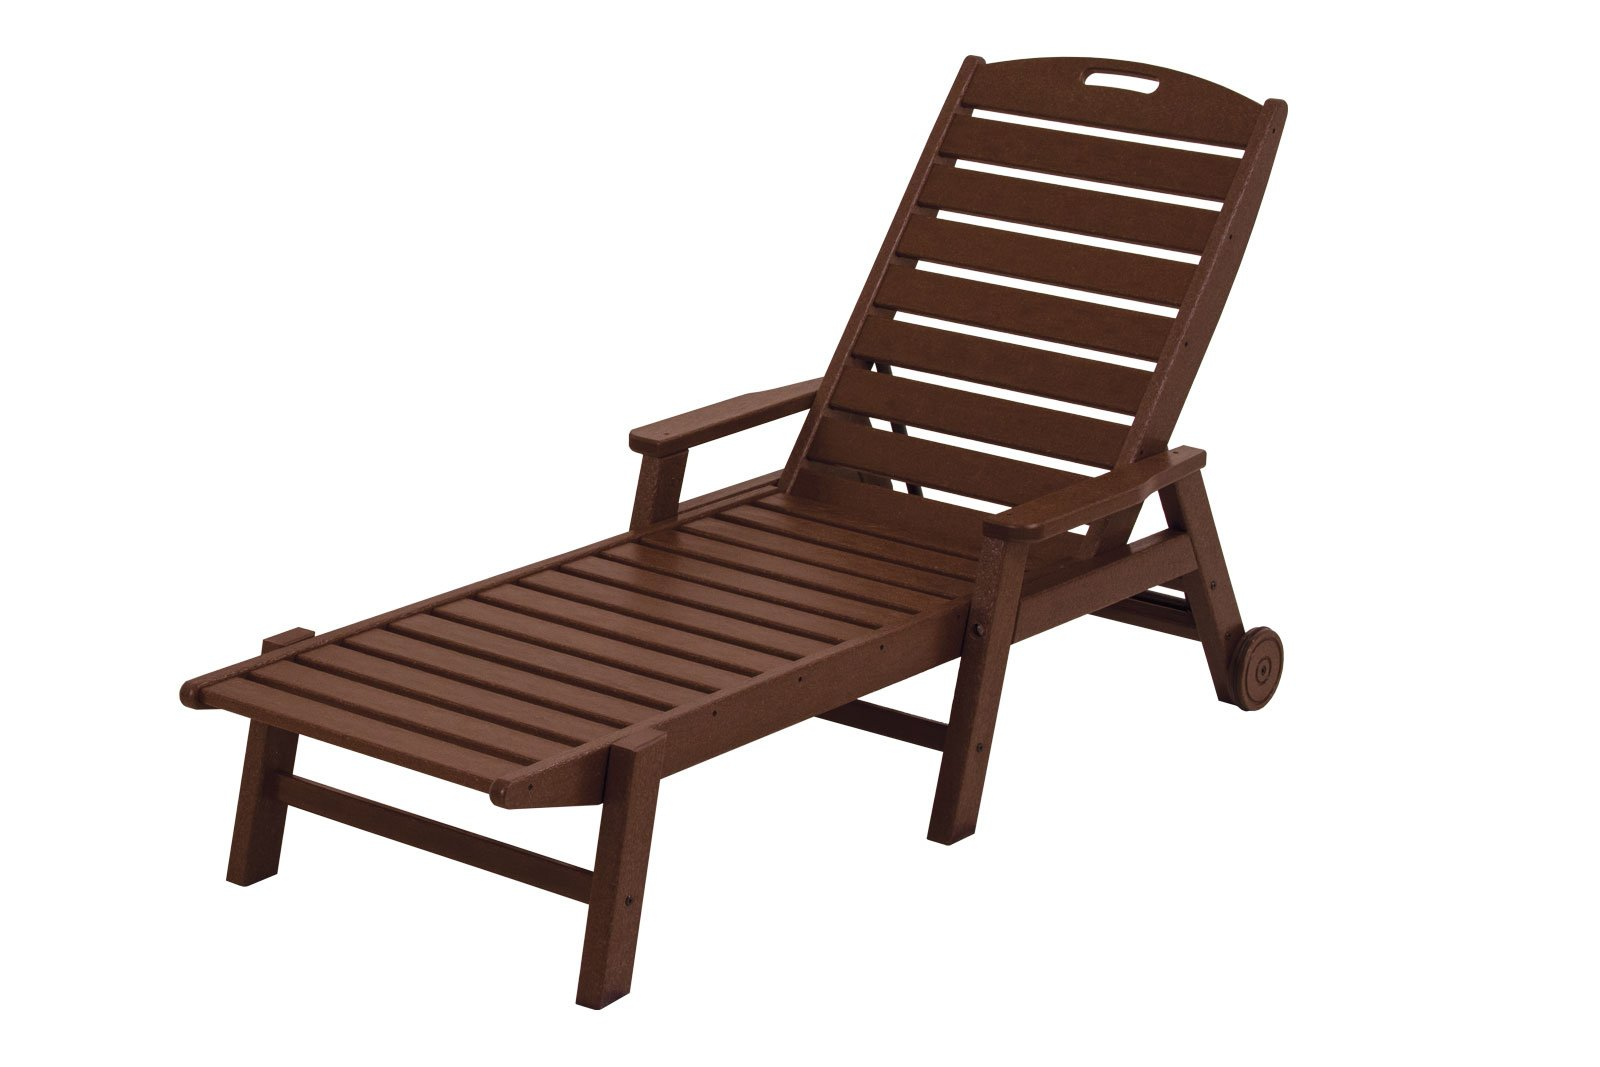 POLYWOOD PWS145-1-MA Nautical 3-Piece Chaise Set, Mahogany by POLYWOOD (Image #2)